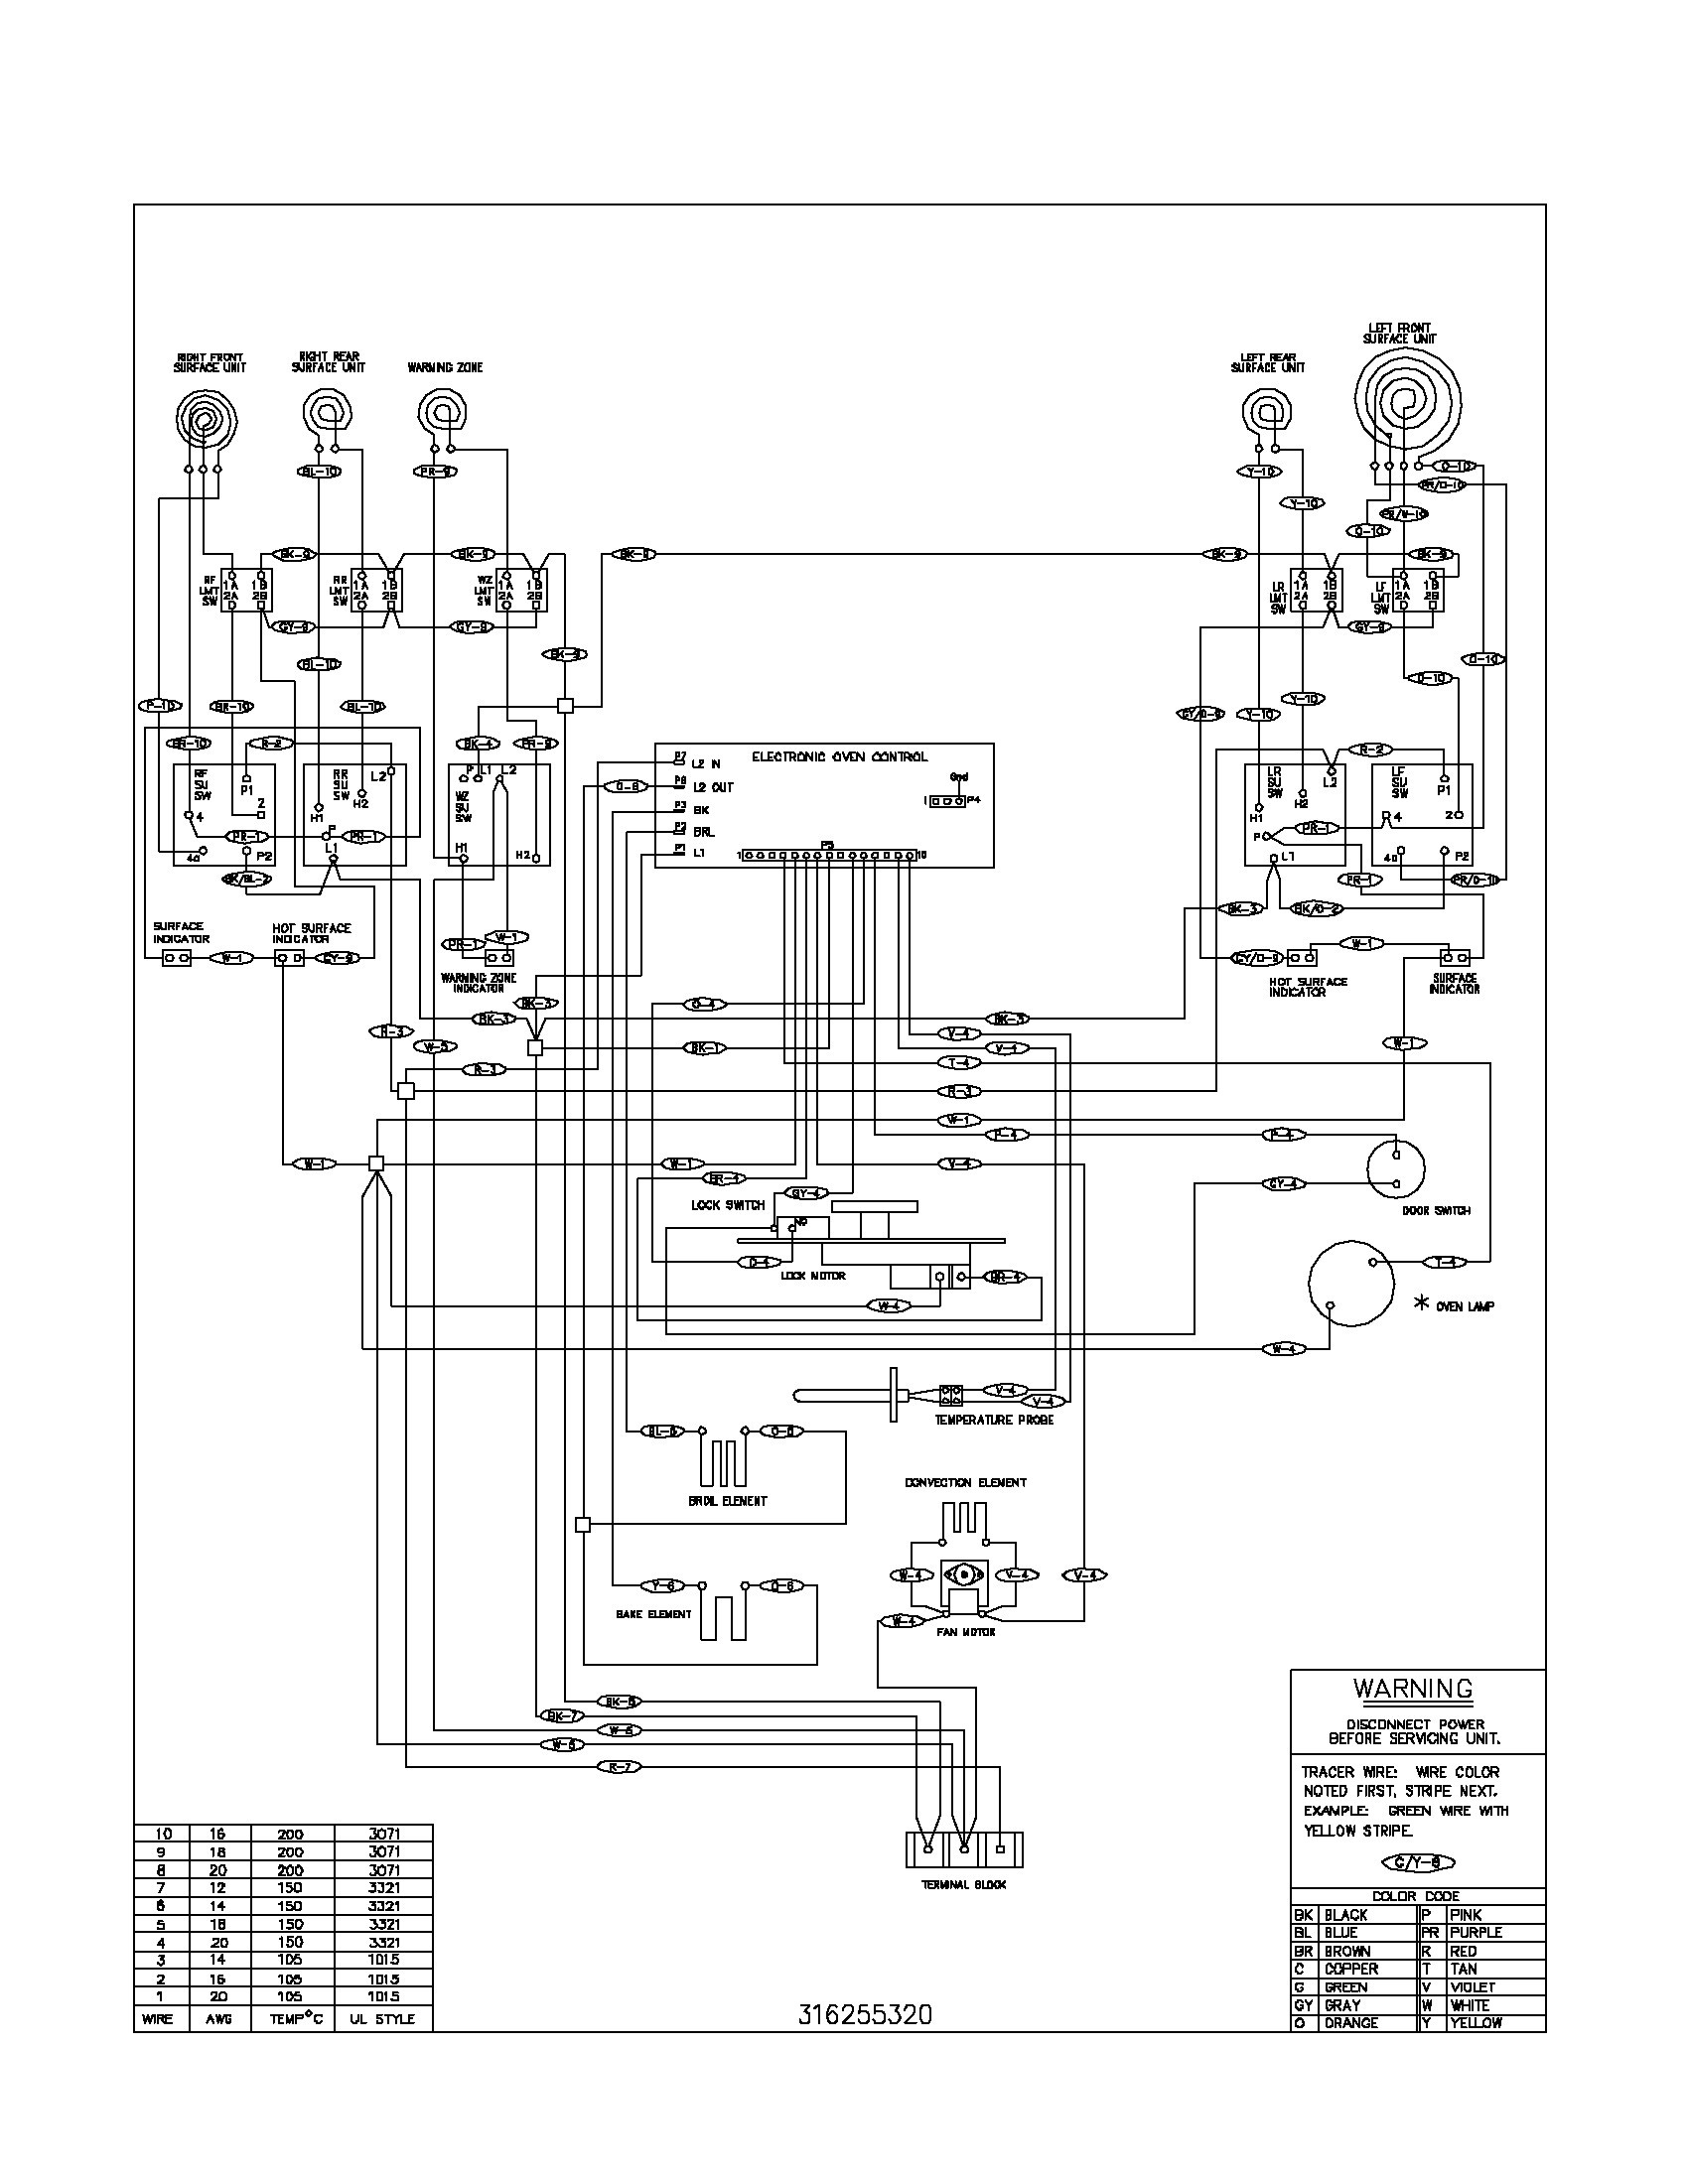 Ge Profile Schematic | Wiring Diagram on